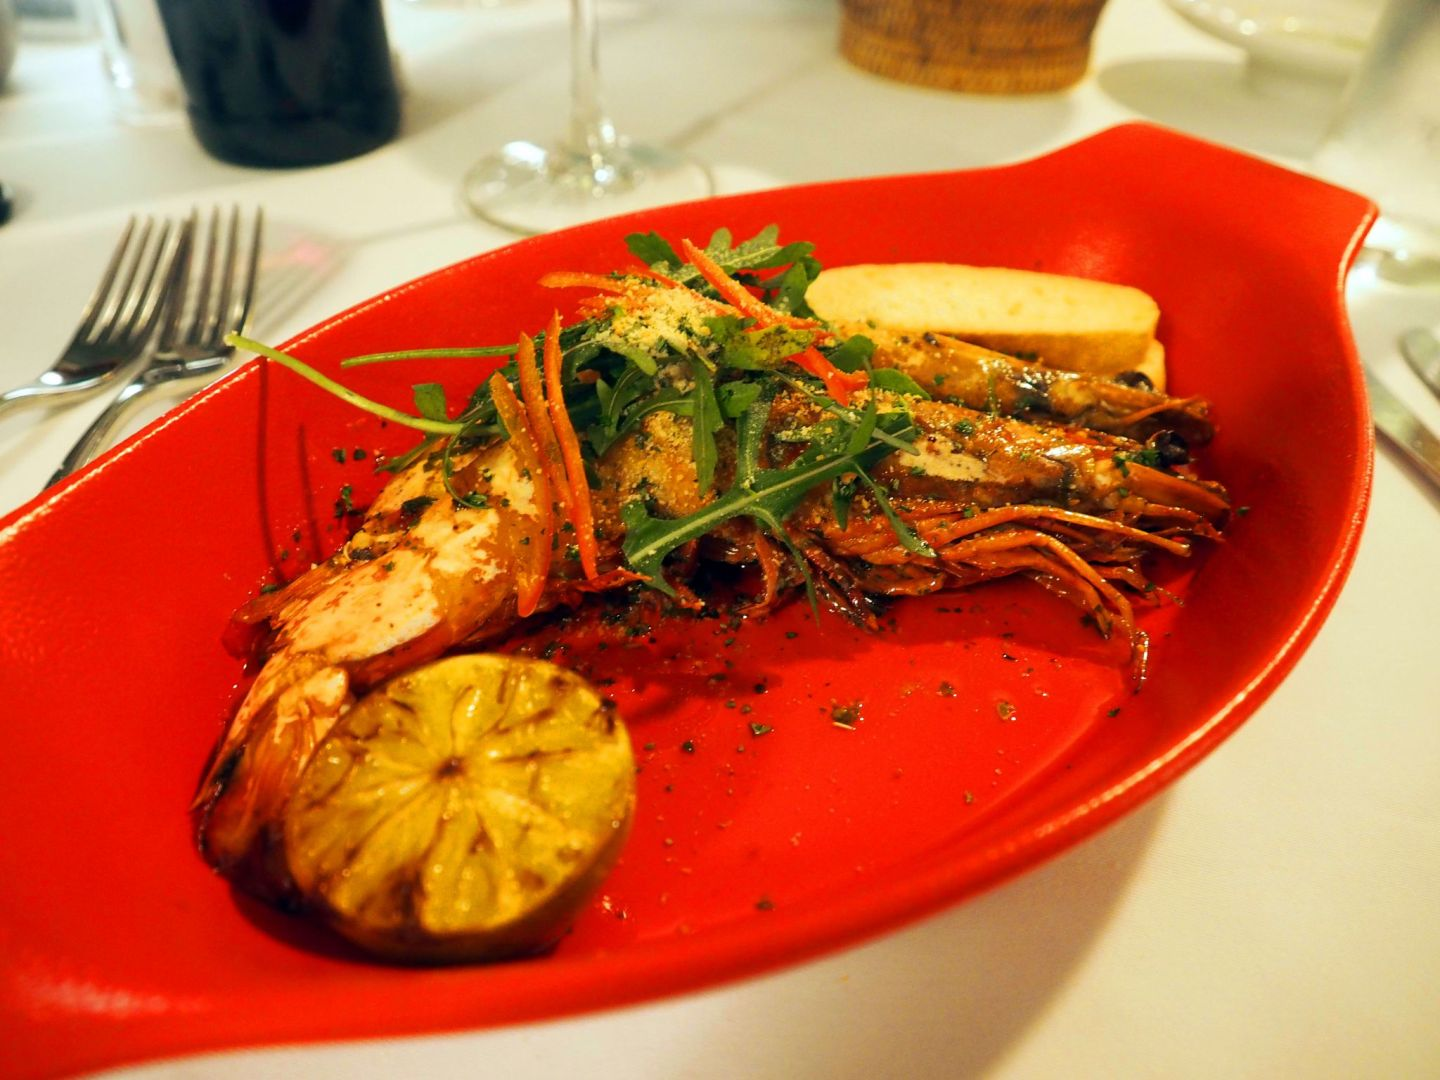 Prawns at Allegria LUX Maldives